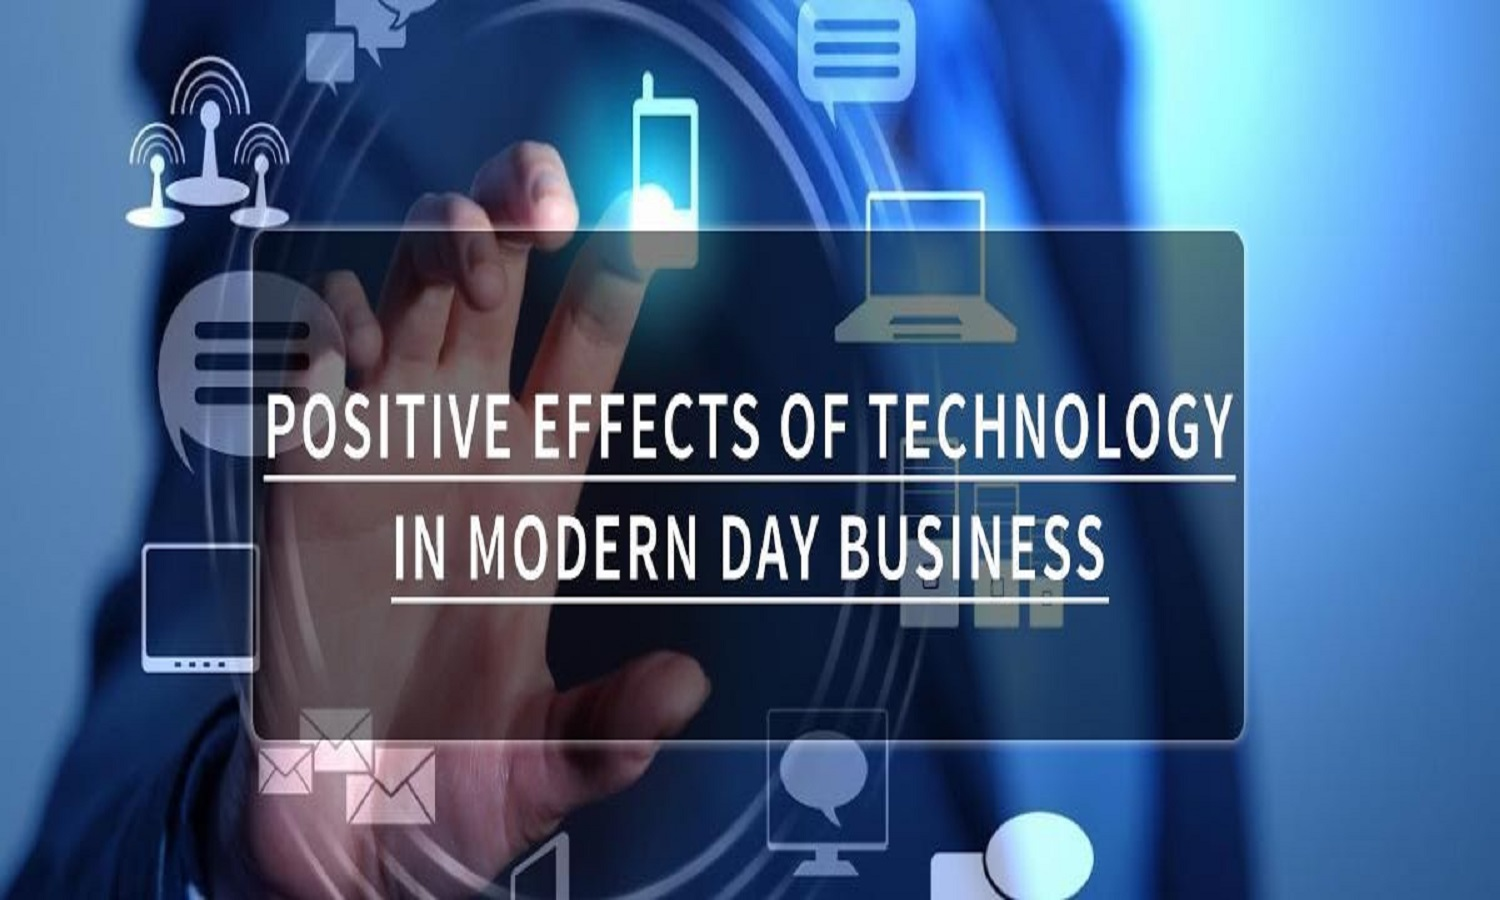 Positive Effects of Technology In Modern Day Business